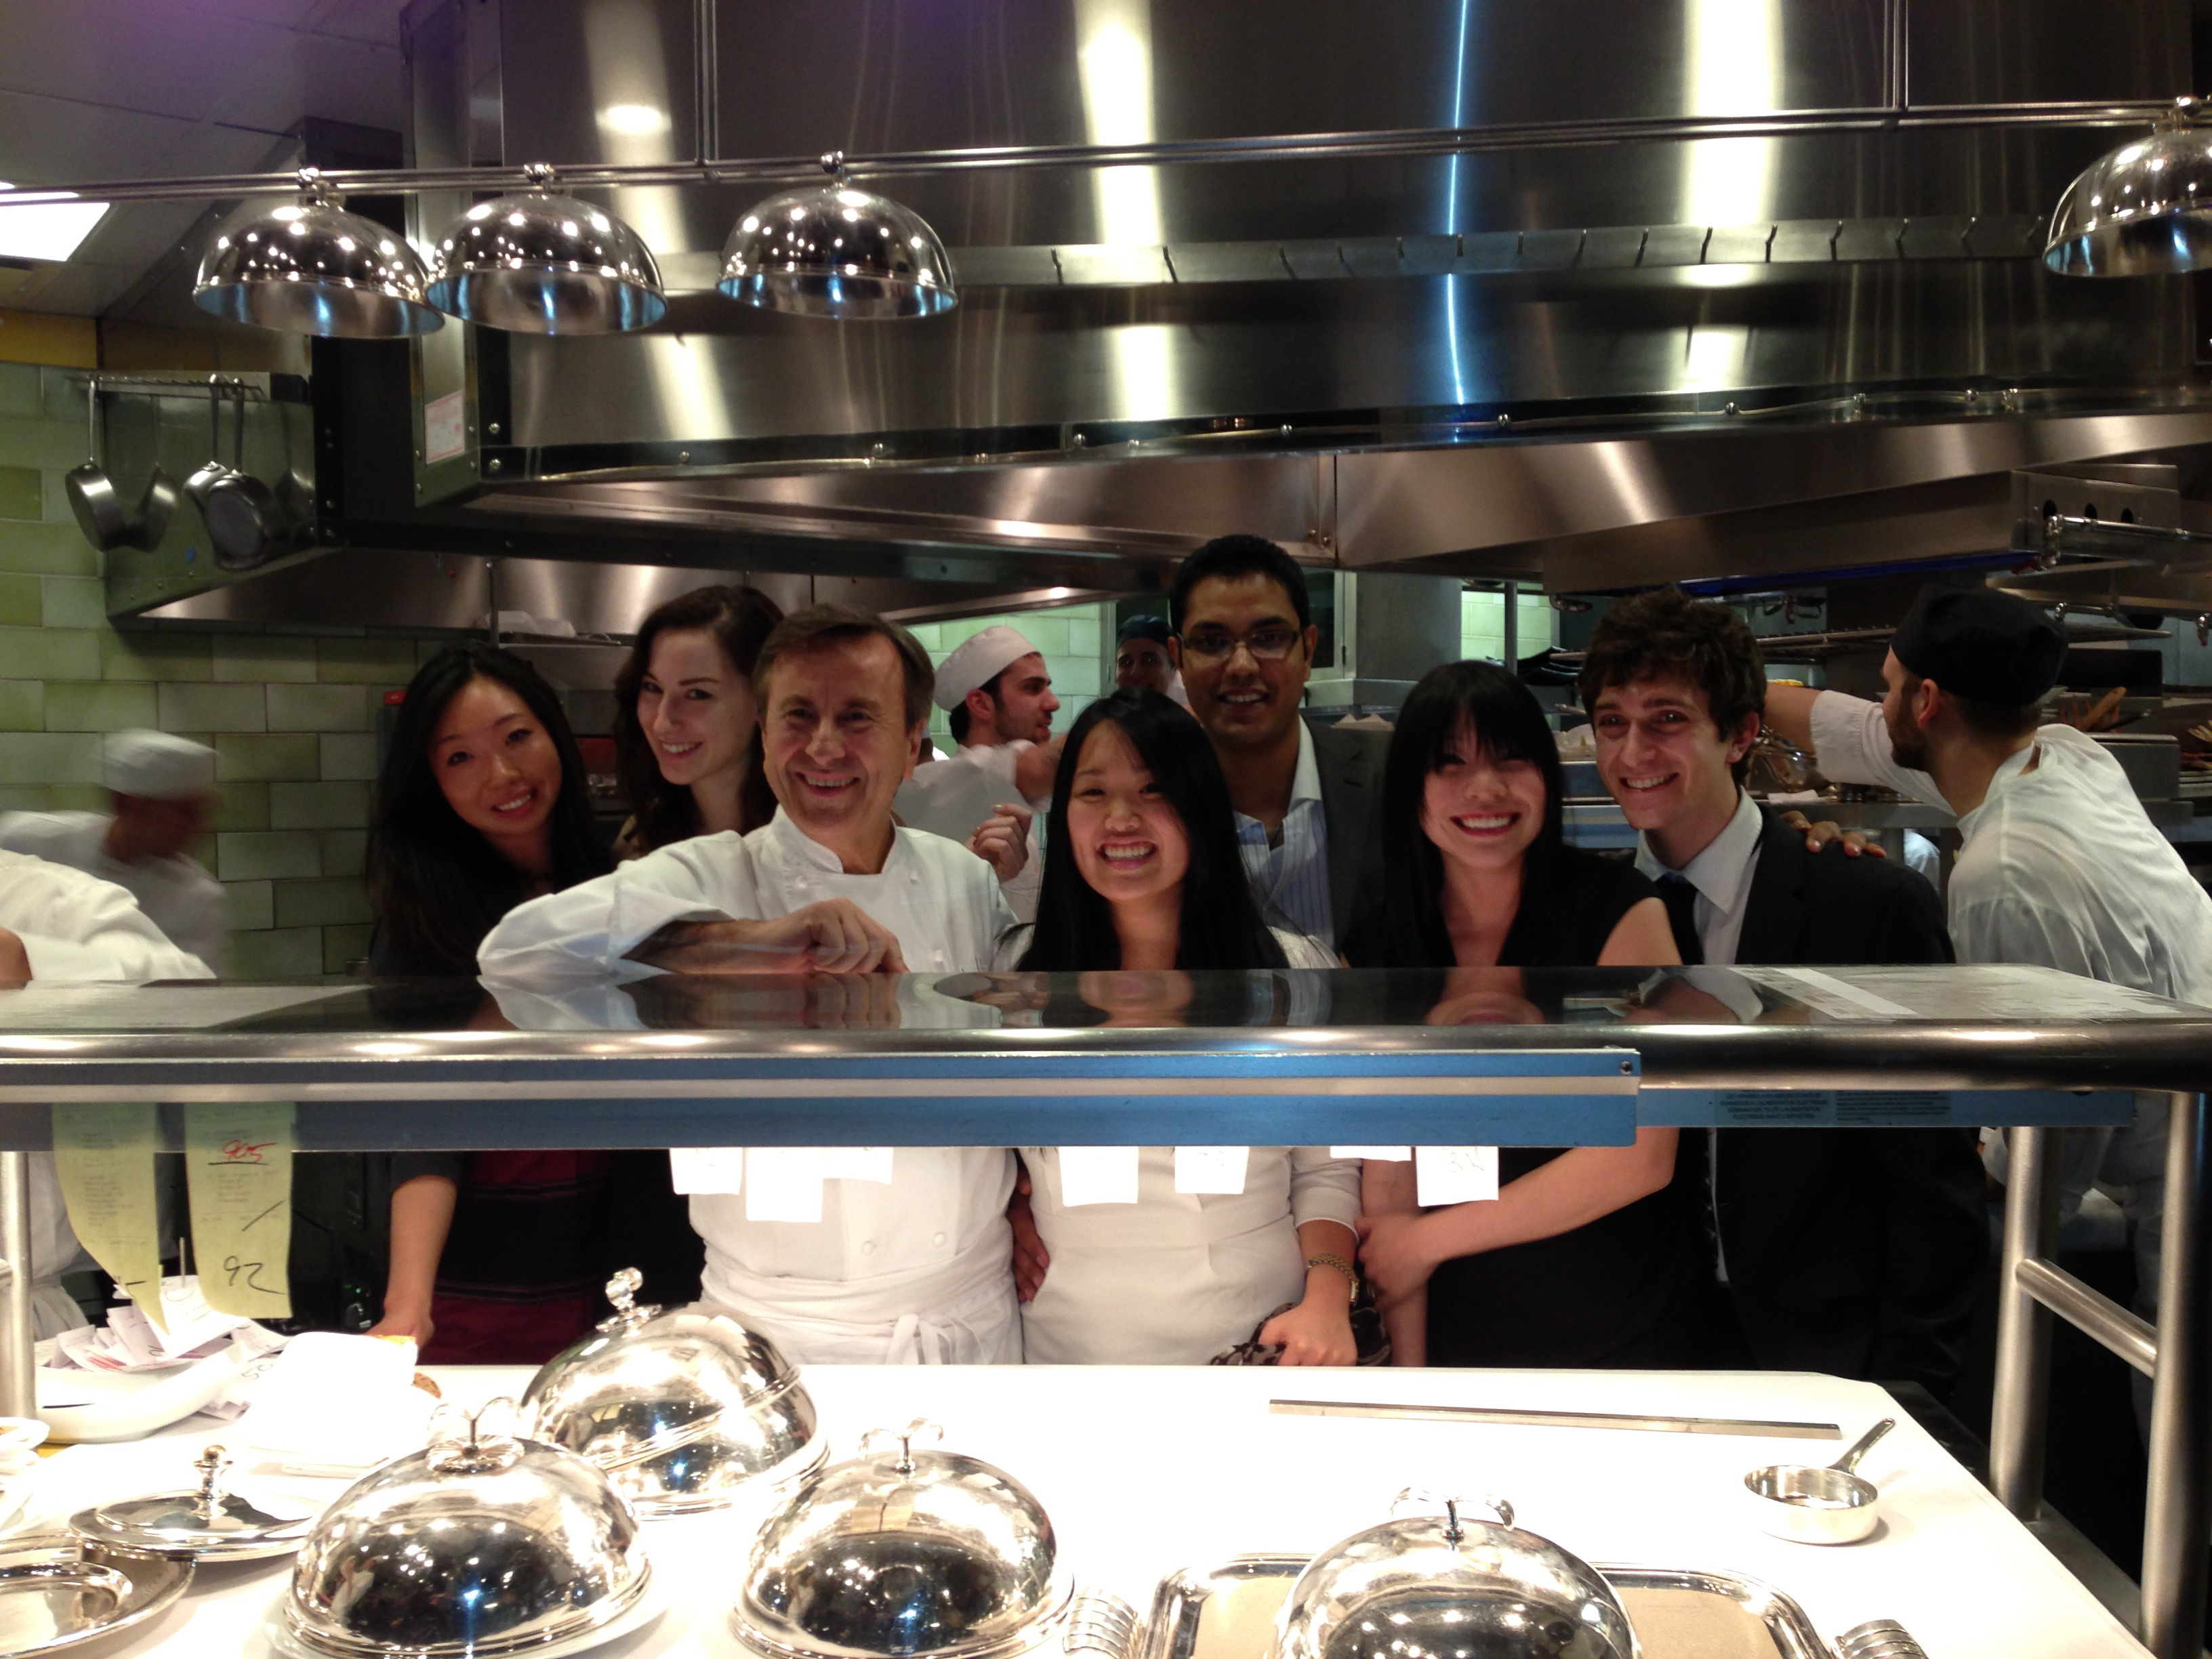 Birthday Group Shot Daniel Boulud